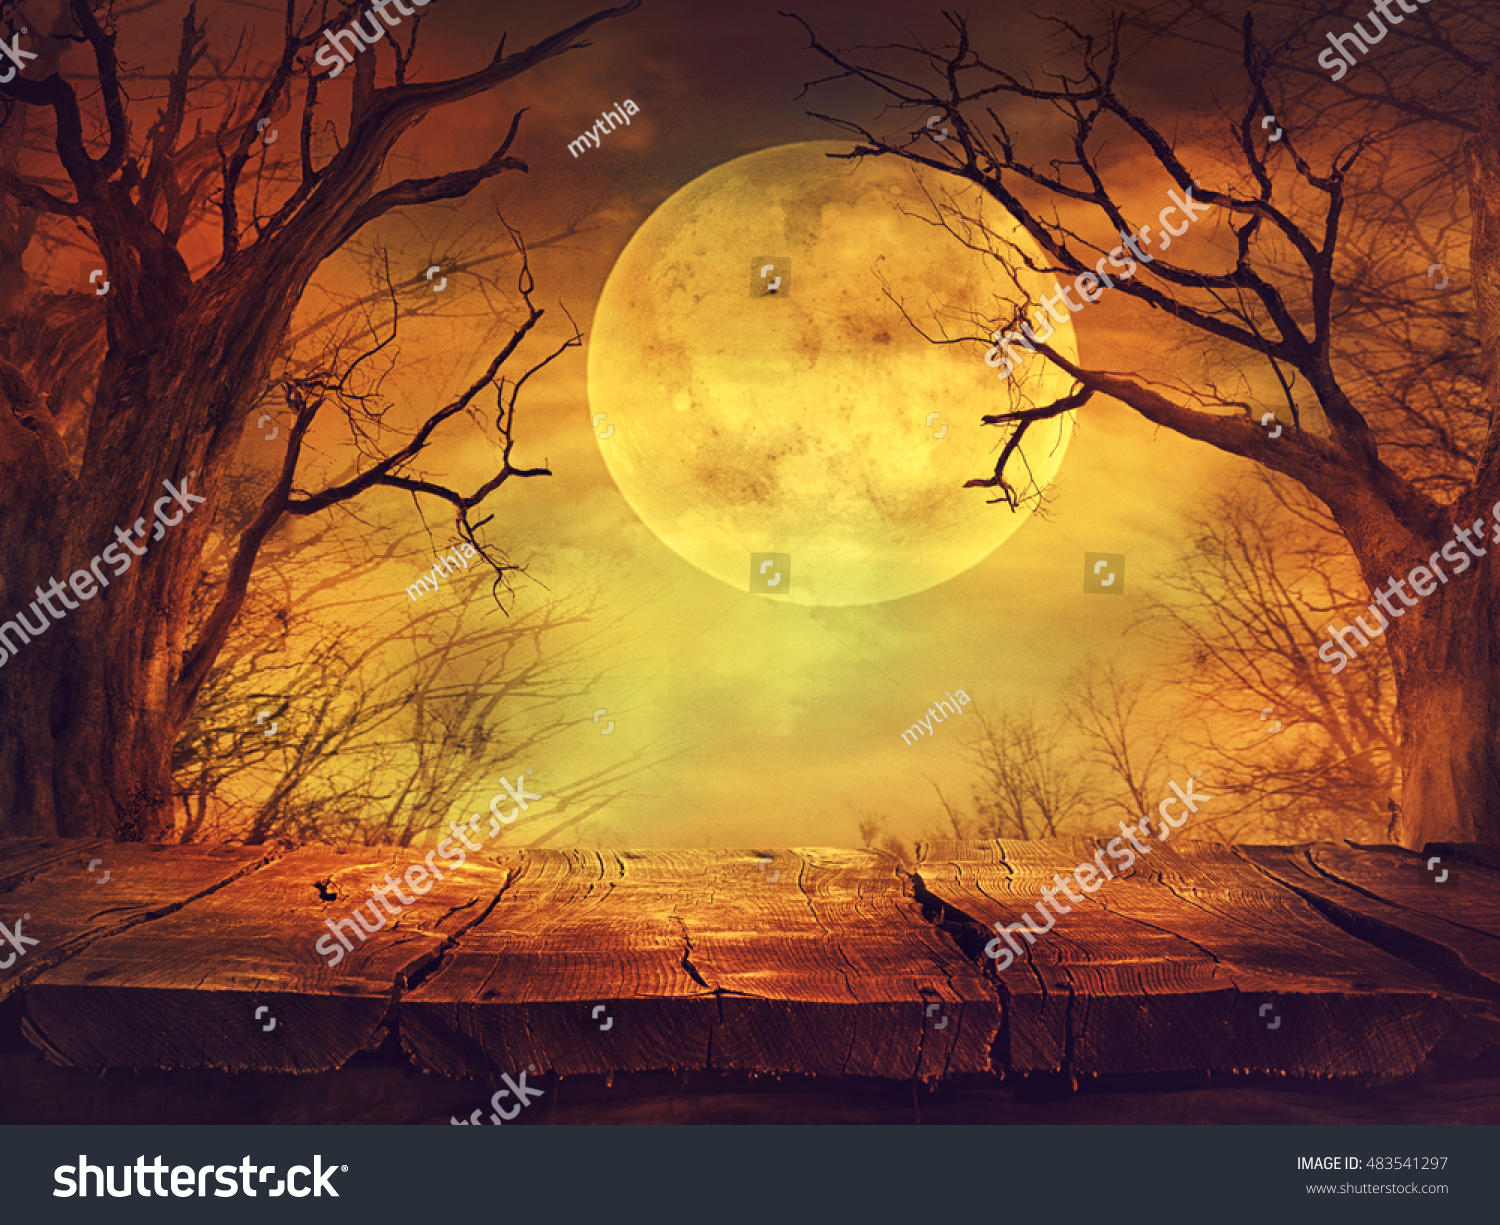 Halloween background. Spooky forest with full moon and wooden table #483541297